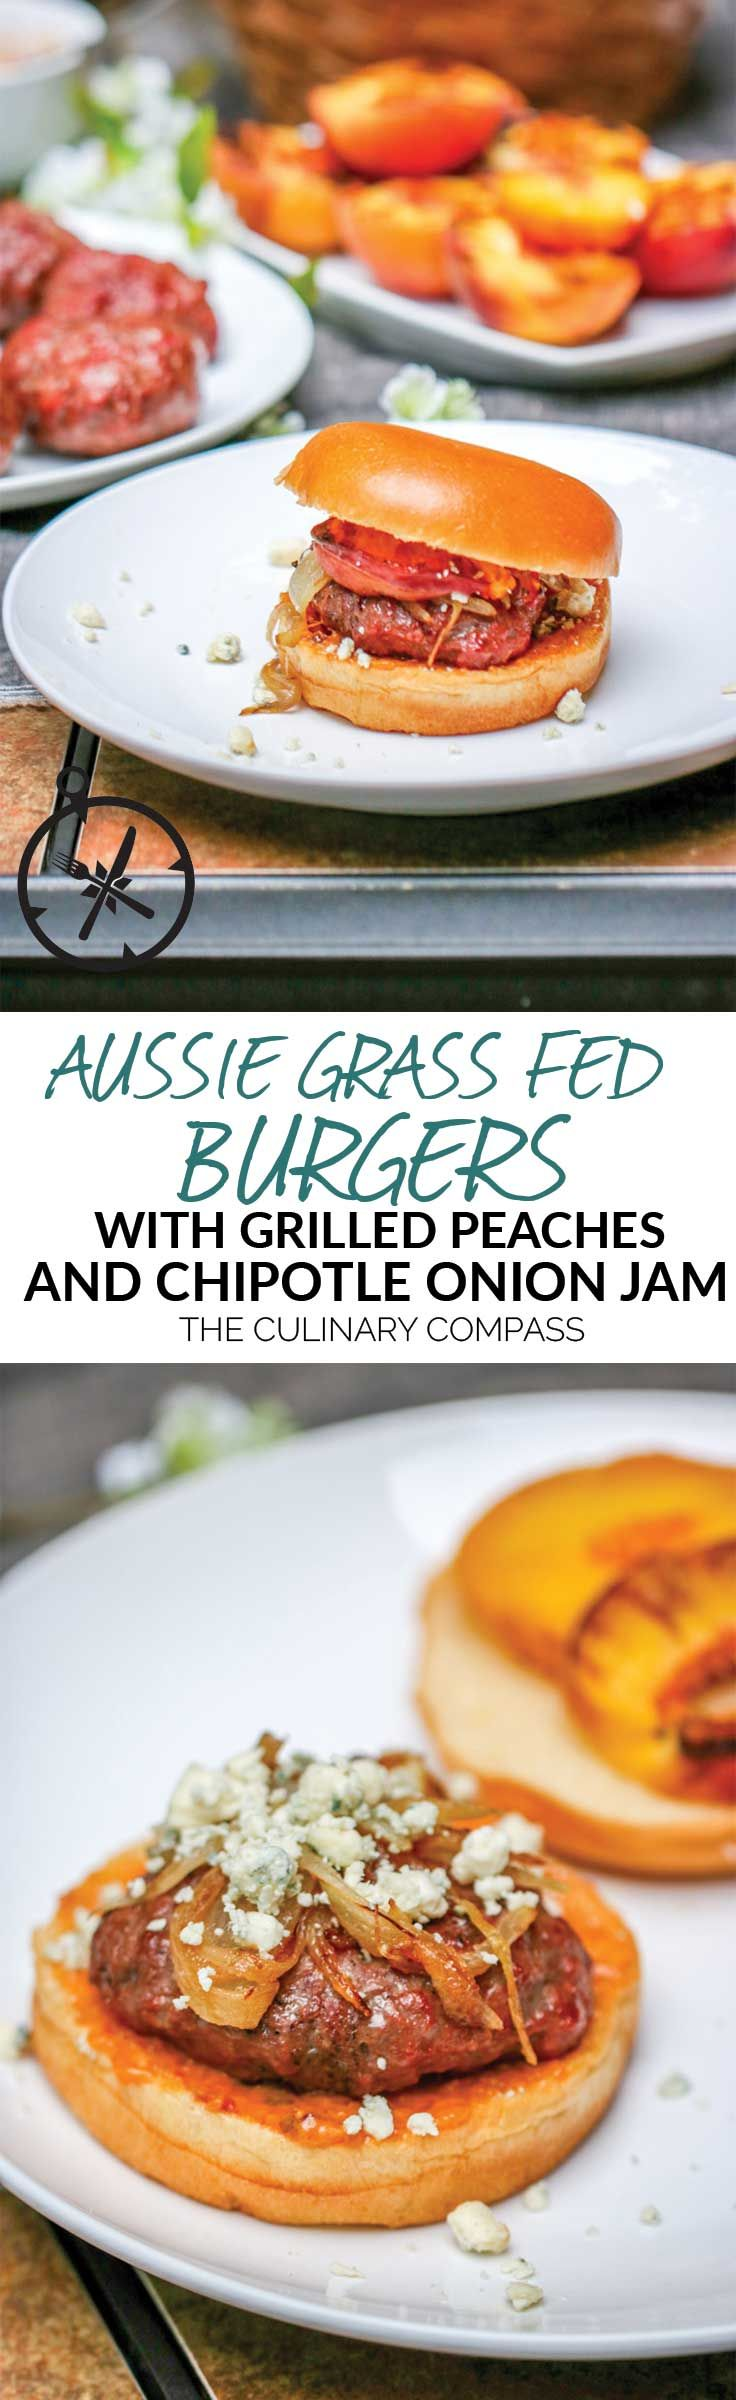 These Aussie Grass Fed Beef Burgers with Grilled Peaches and Chipotle Onion Jam are layered with bold flavors and perfect for the adventurous eater! via @culinarycompass